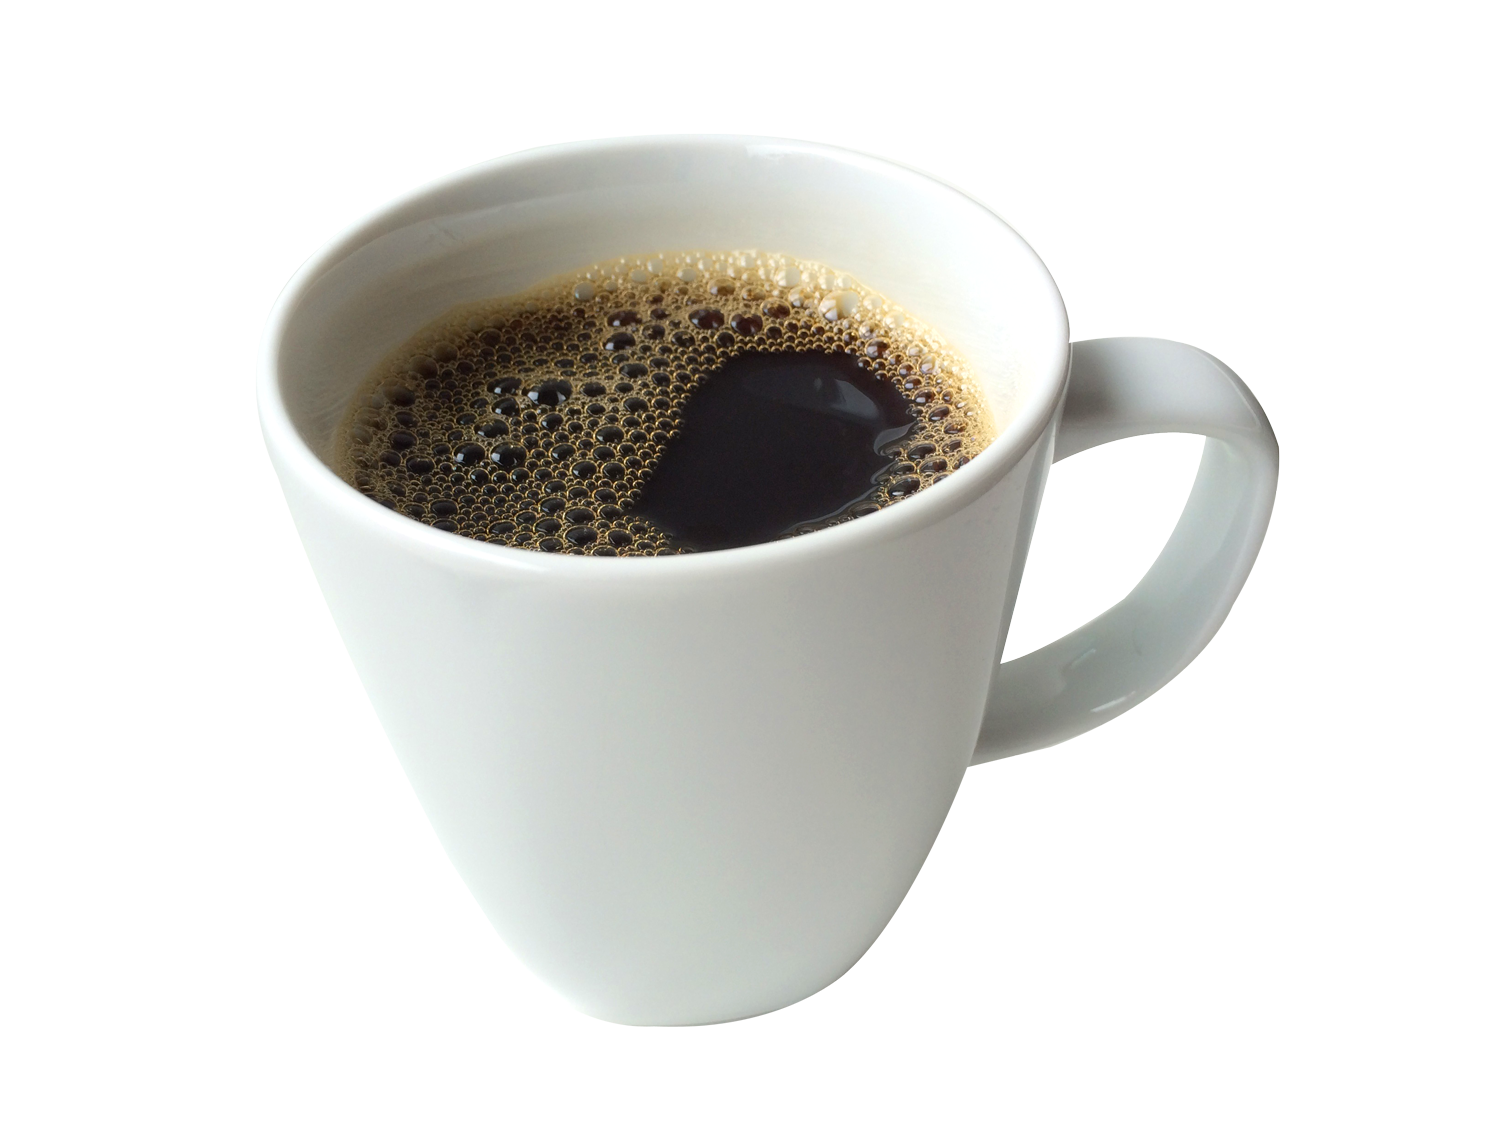 coffee cup png image pngpix #12635